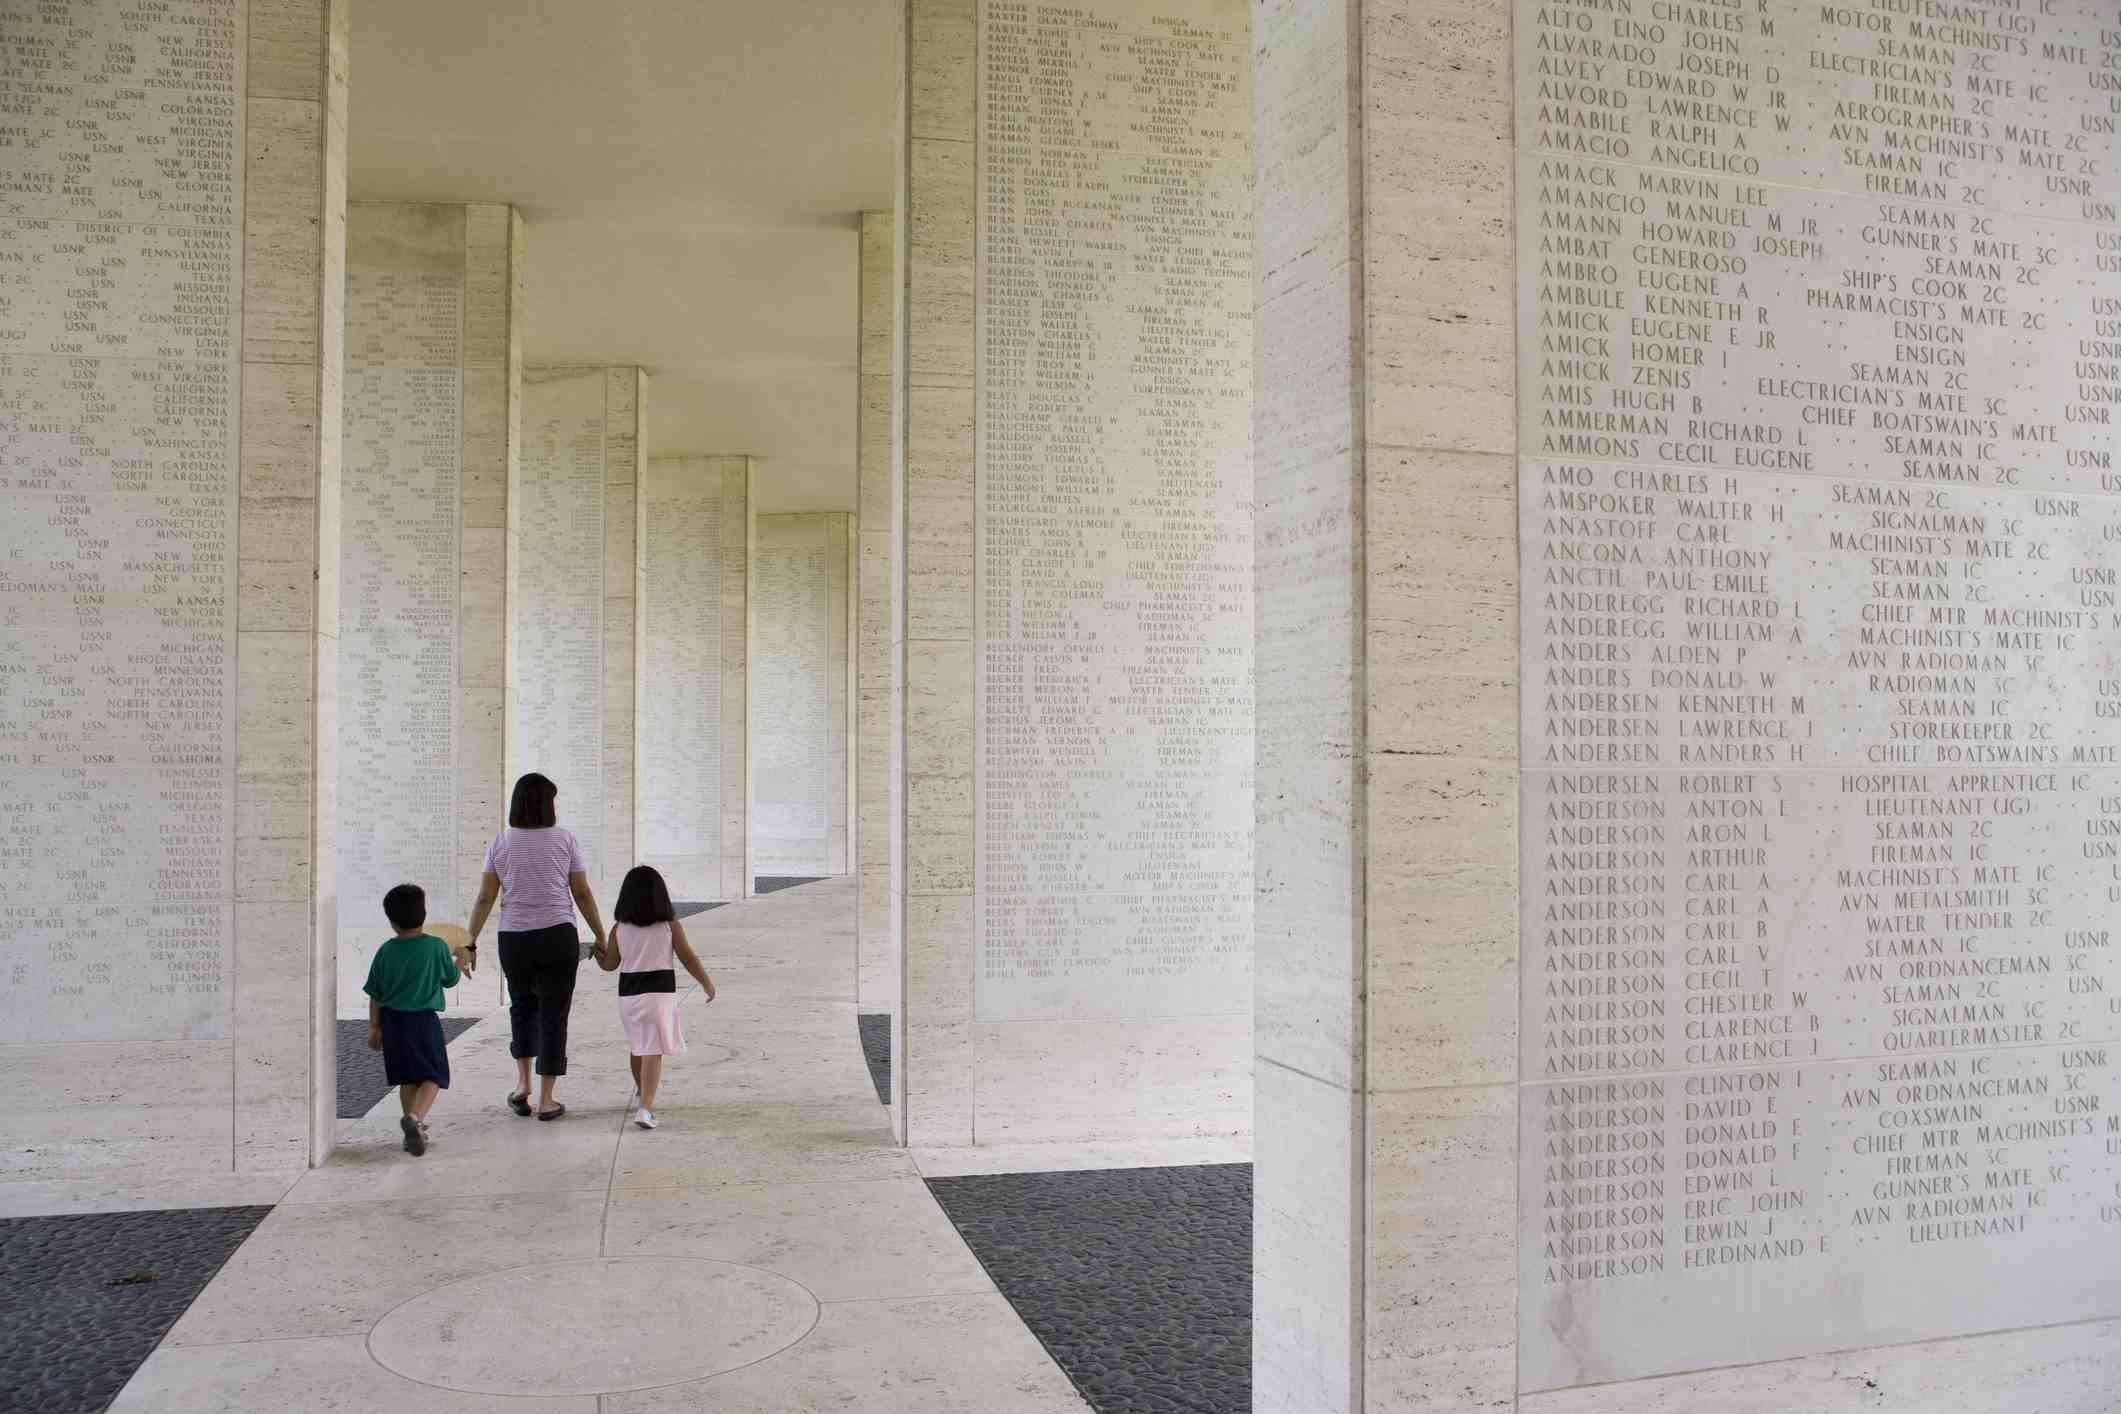 Family walking amidst the Tablets of the Missing, Manila American Cemetery